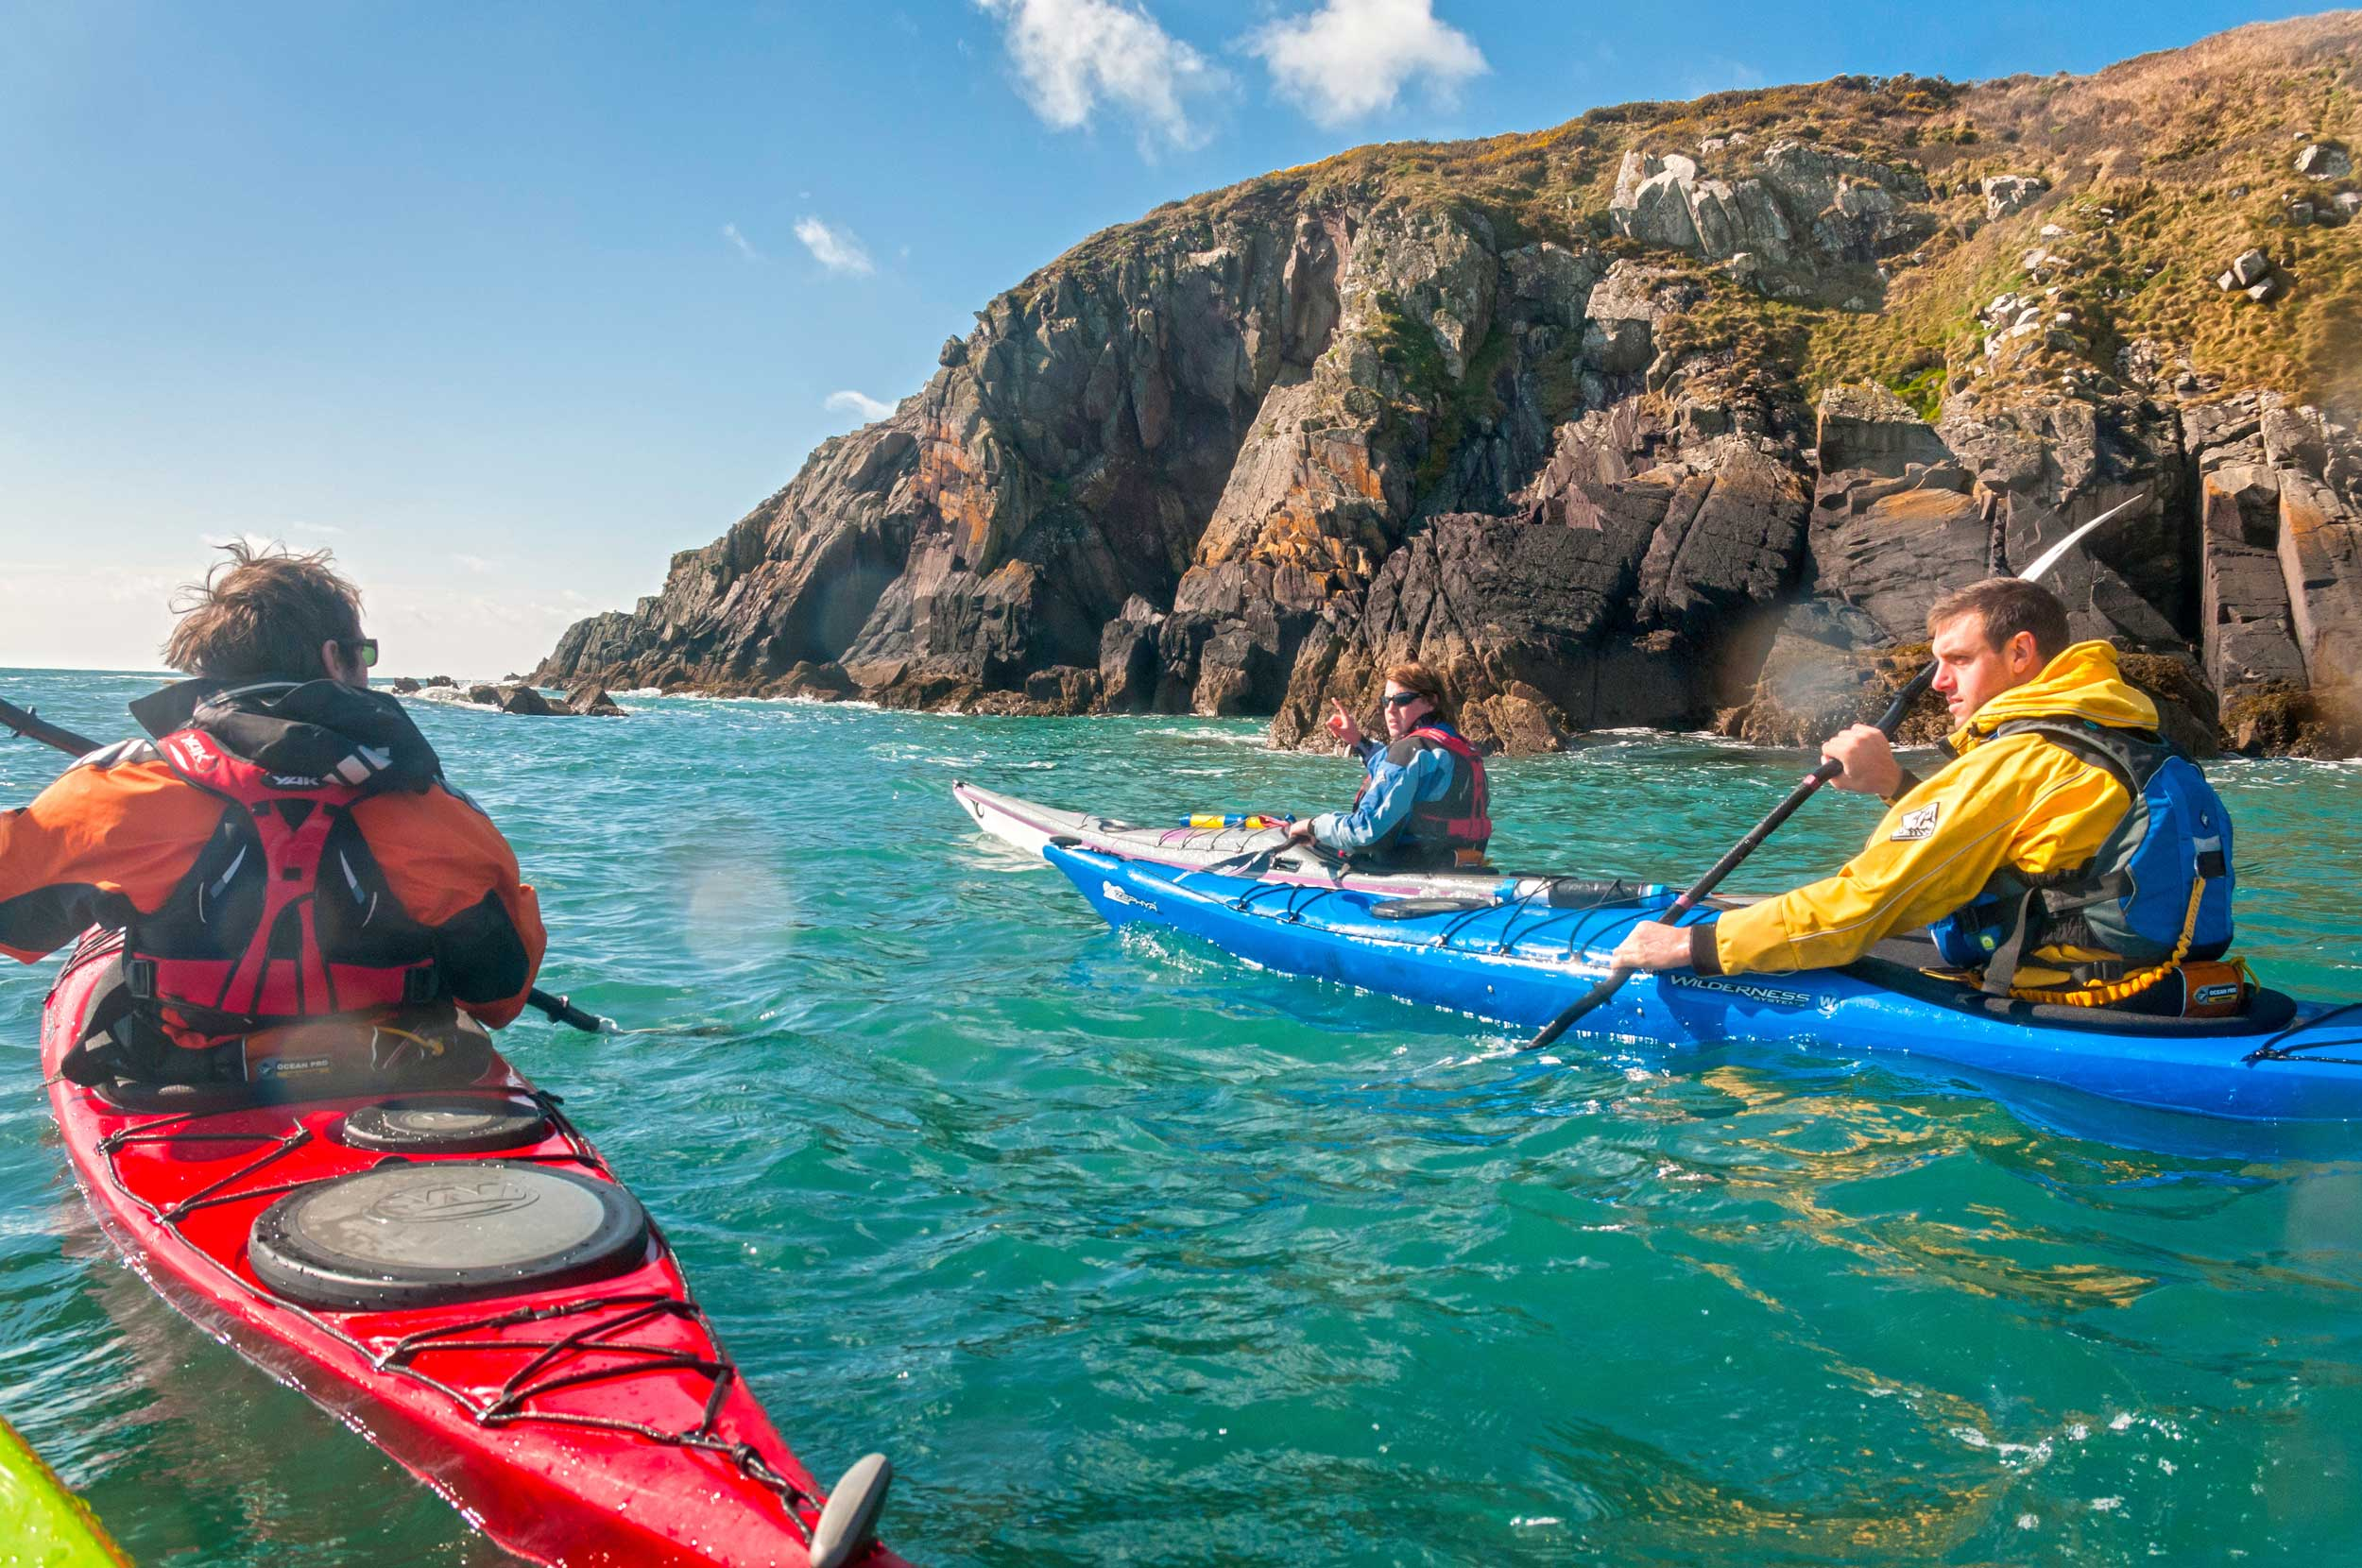 Sea kayaking around the Pembrokeshire coast, Wales  (Crown copyright 2018 / Visit Wales)